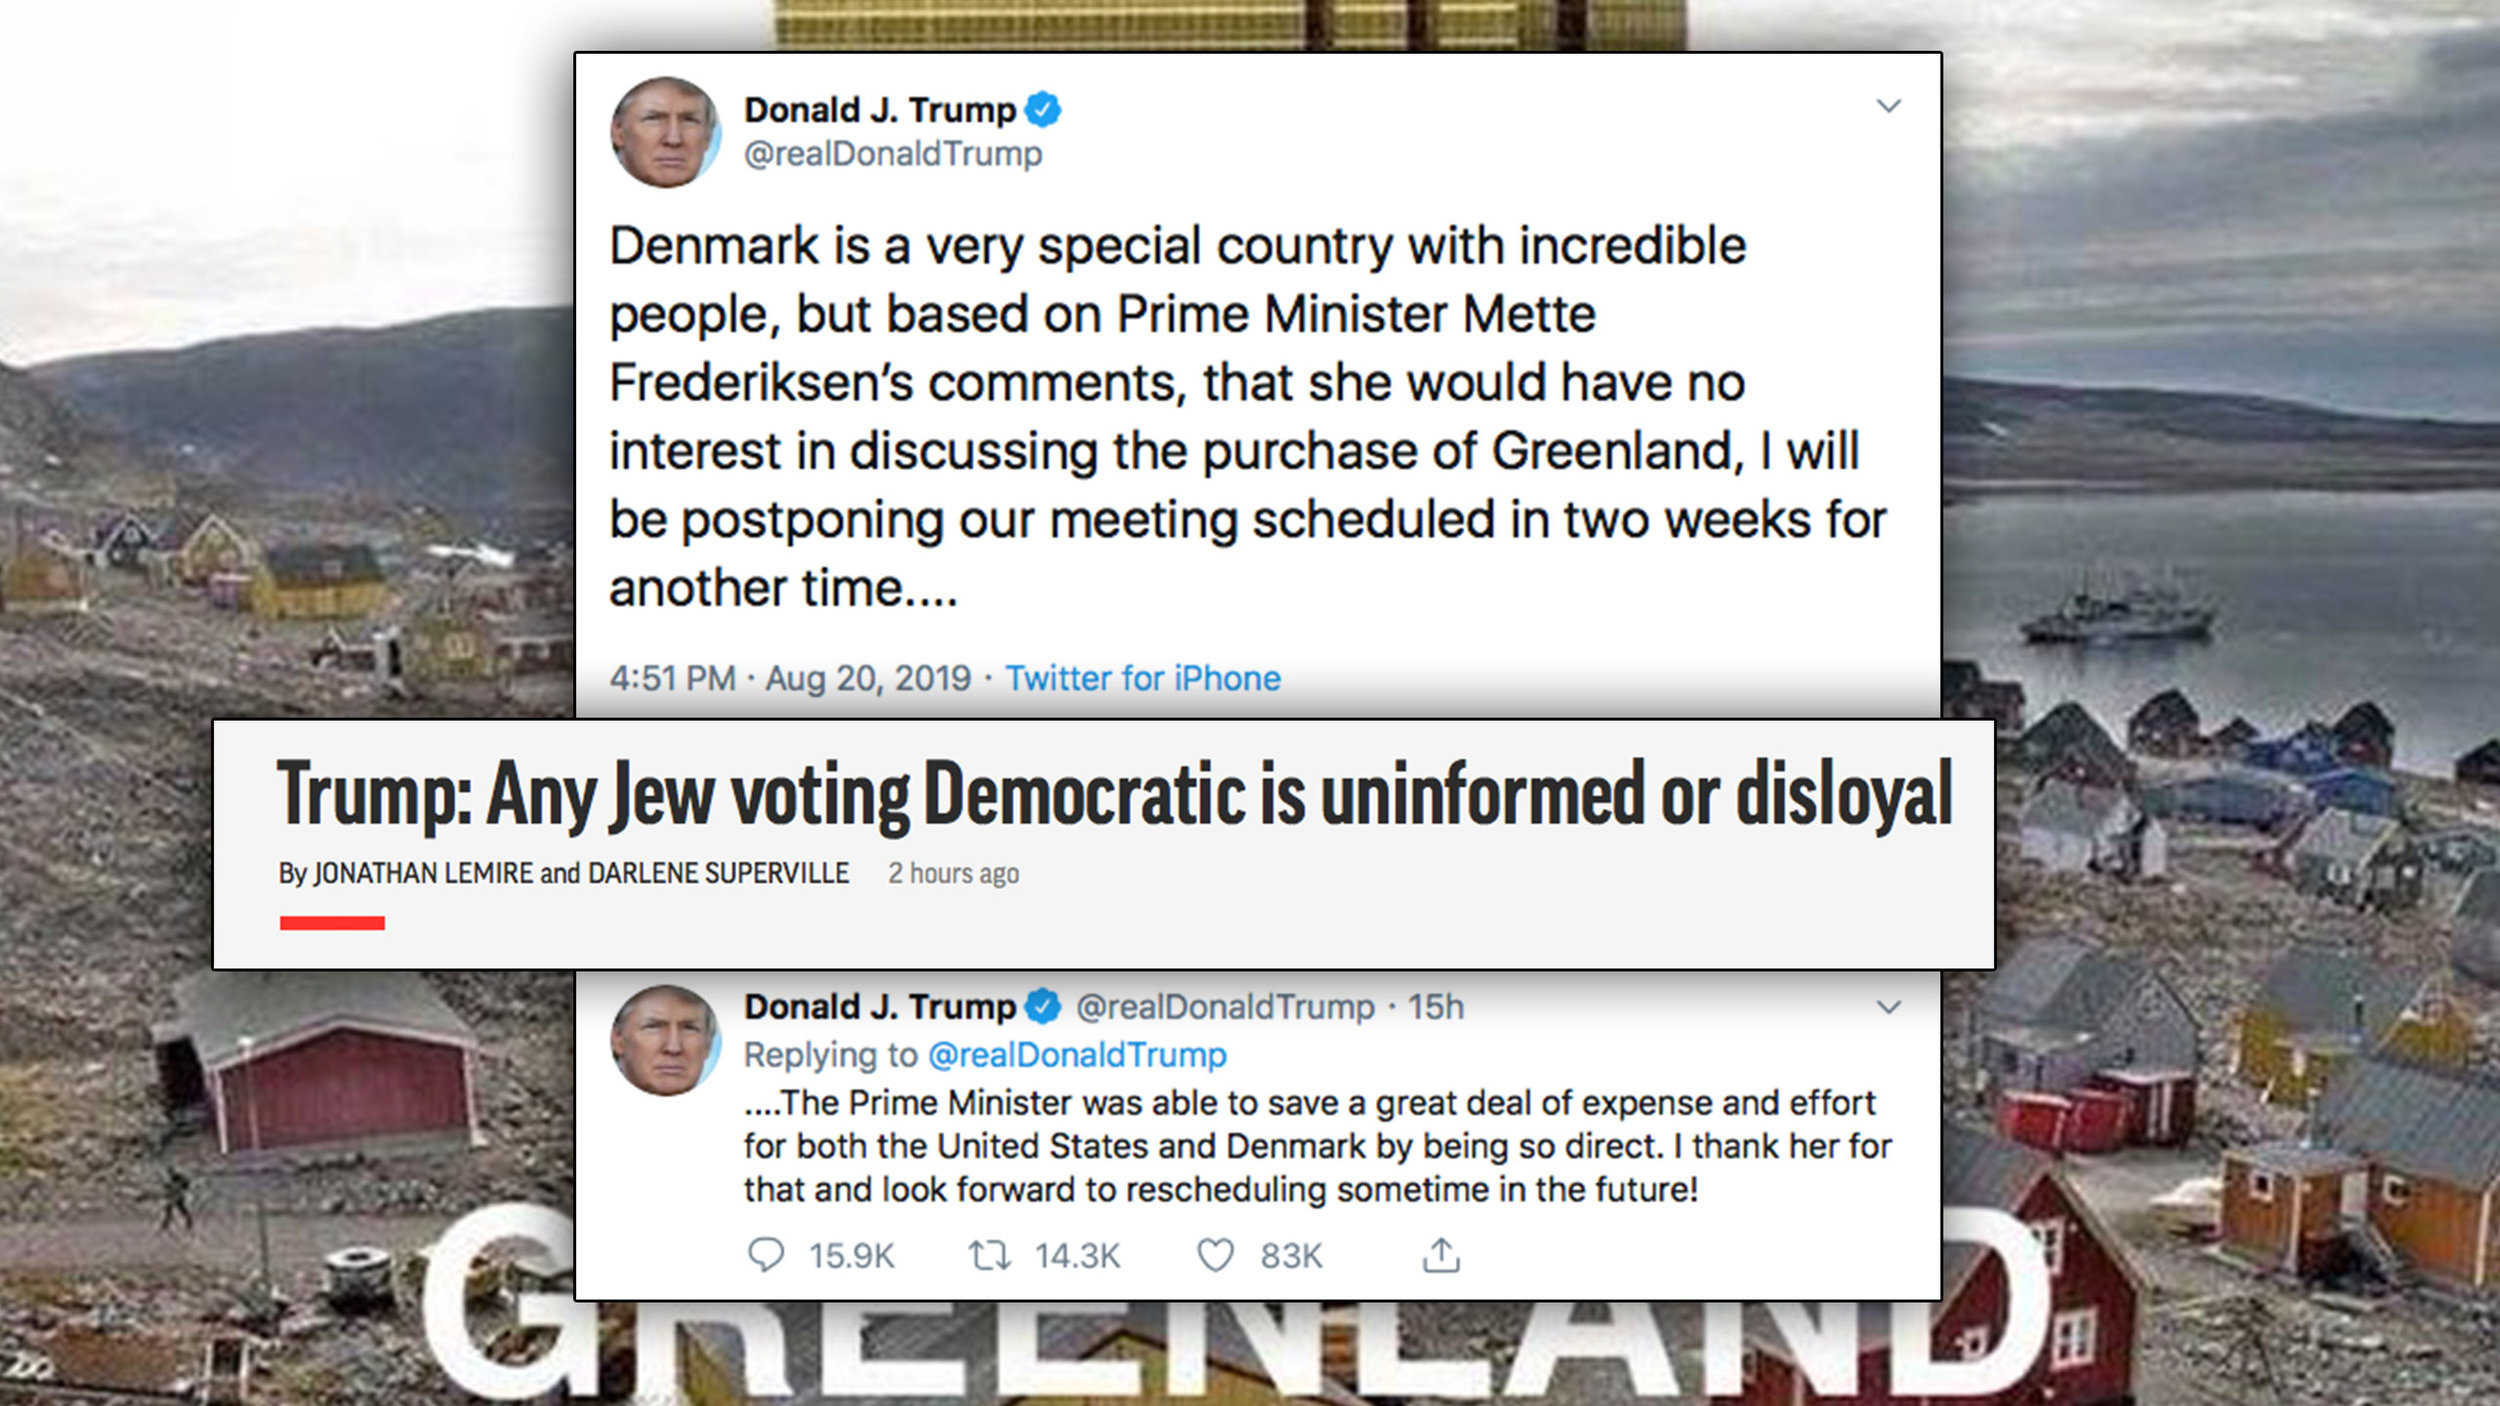 "Background image: Trump  tweeted : ""I promise not to do this to Greenland!""  Trump later  tweeted  a cancellation of his trip to Denmark after the female PM Mette Frederiksen called the Greenland purchase talk ""absurd."" Also:  AP  headline: ""Trump: Any Jew voting Democratic is uninformed or disloyal"""